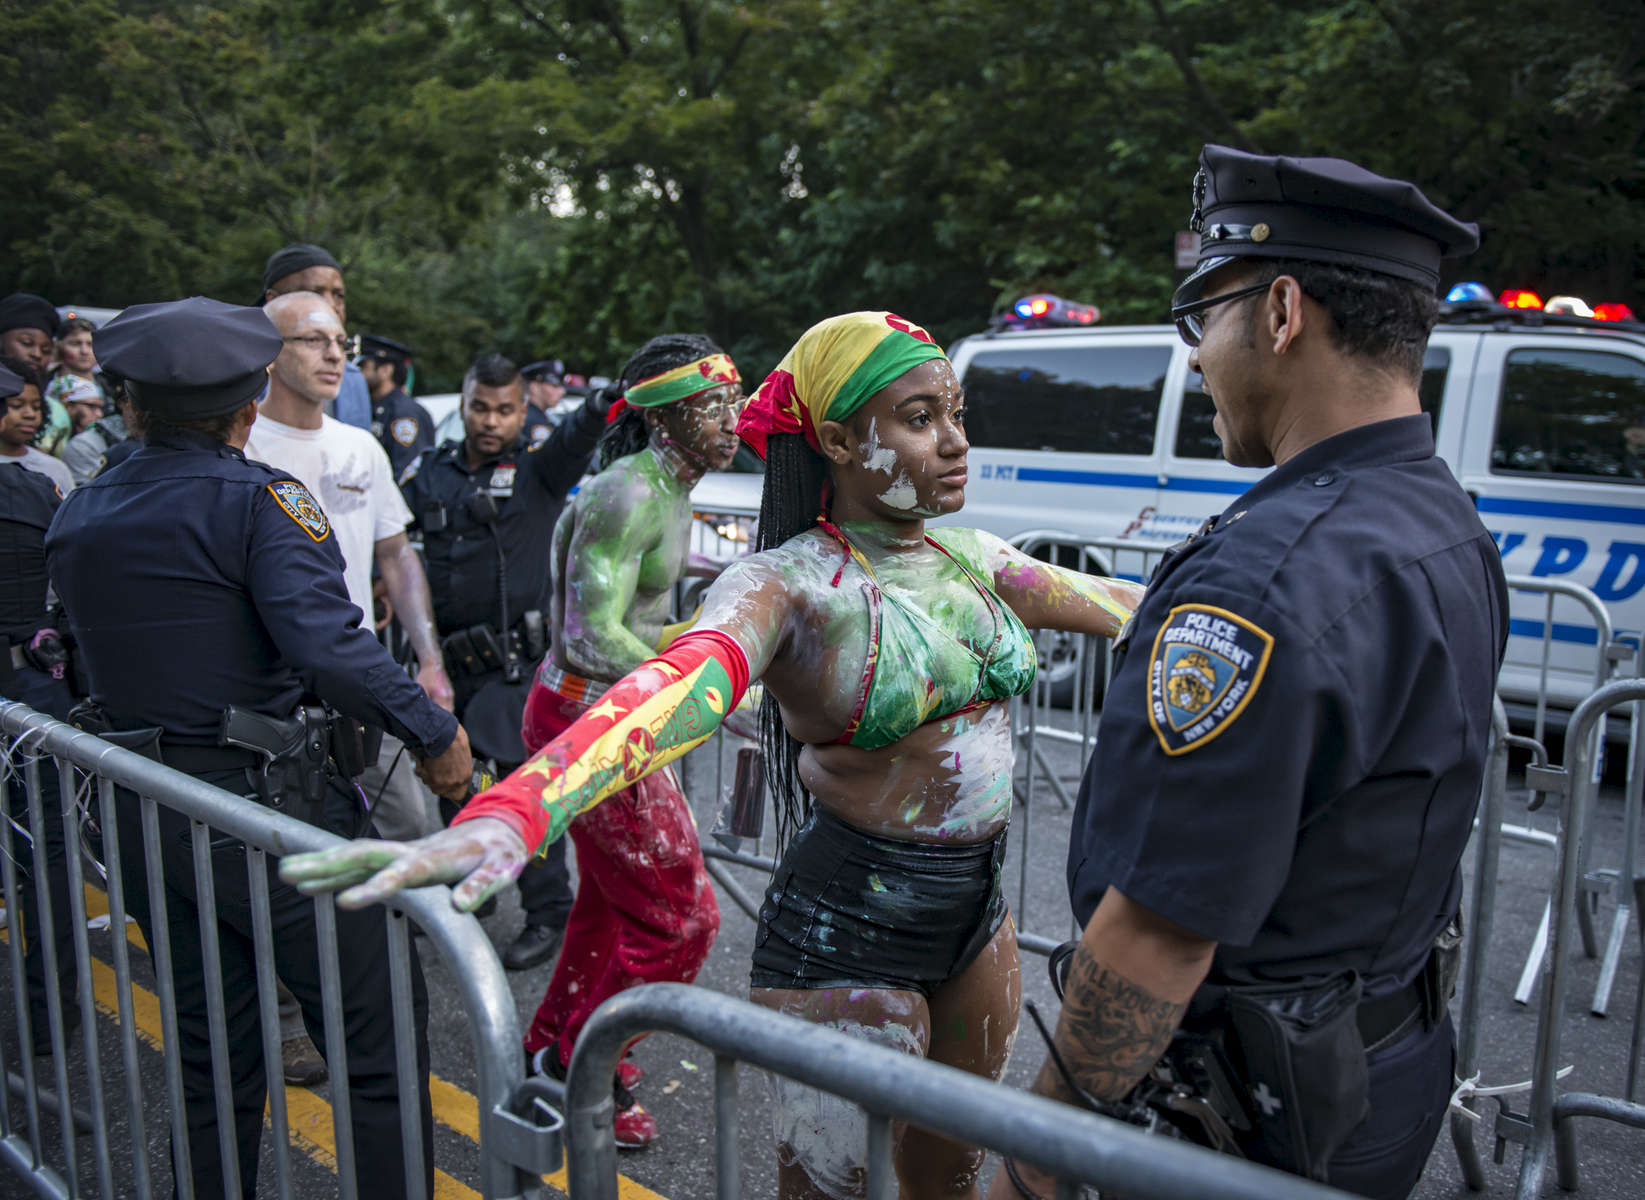 Parade participants go through NYPD check point as they arrive at the annual J'Ouvert Parade held in Crown Heights, Brooklyn on Monday September 4, 2017. The pre-dawn festival of J'Ouvert that translates to {quote}day break{quote} is celebrated by people of West Indian decent to mark the start of the Caribbean carnival celebrations. (Anthony DelMundo/New York Daily News)